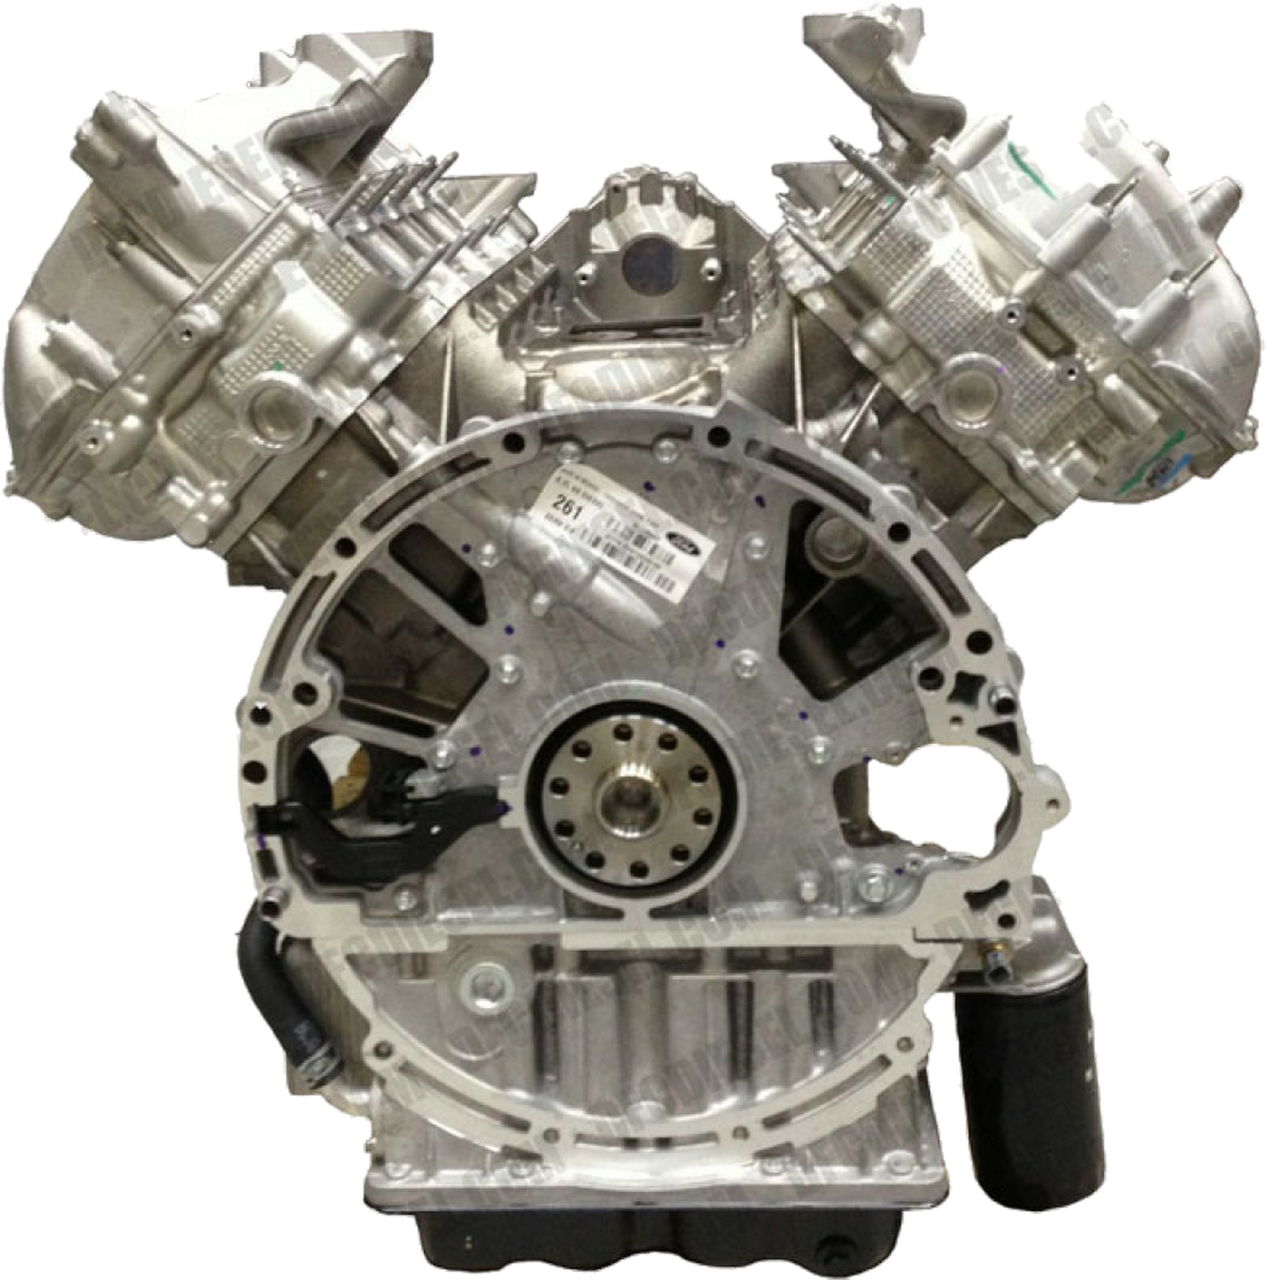 Ford 6.7 Diesel >> Dfc Remanufactured Long Block Ford 6 7 Powerstroke Diesel Engine